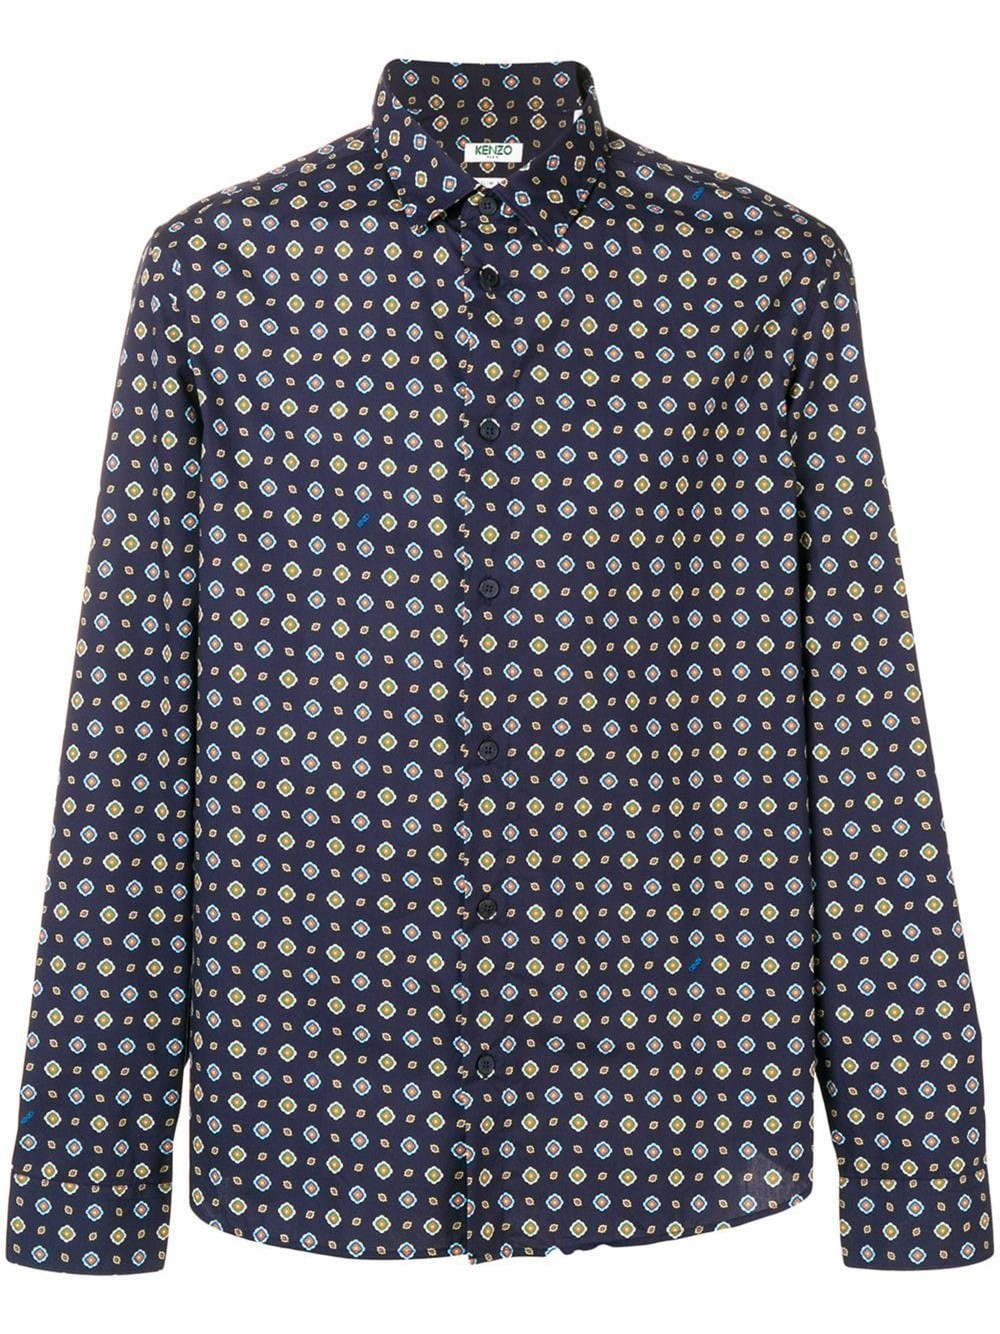 531c00f2 kenzo URBAN PRINTED SHIRT available on montiboutique.com - 27707